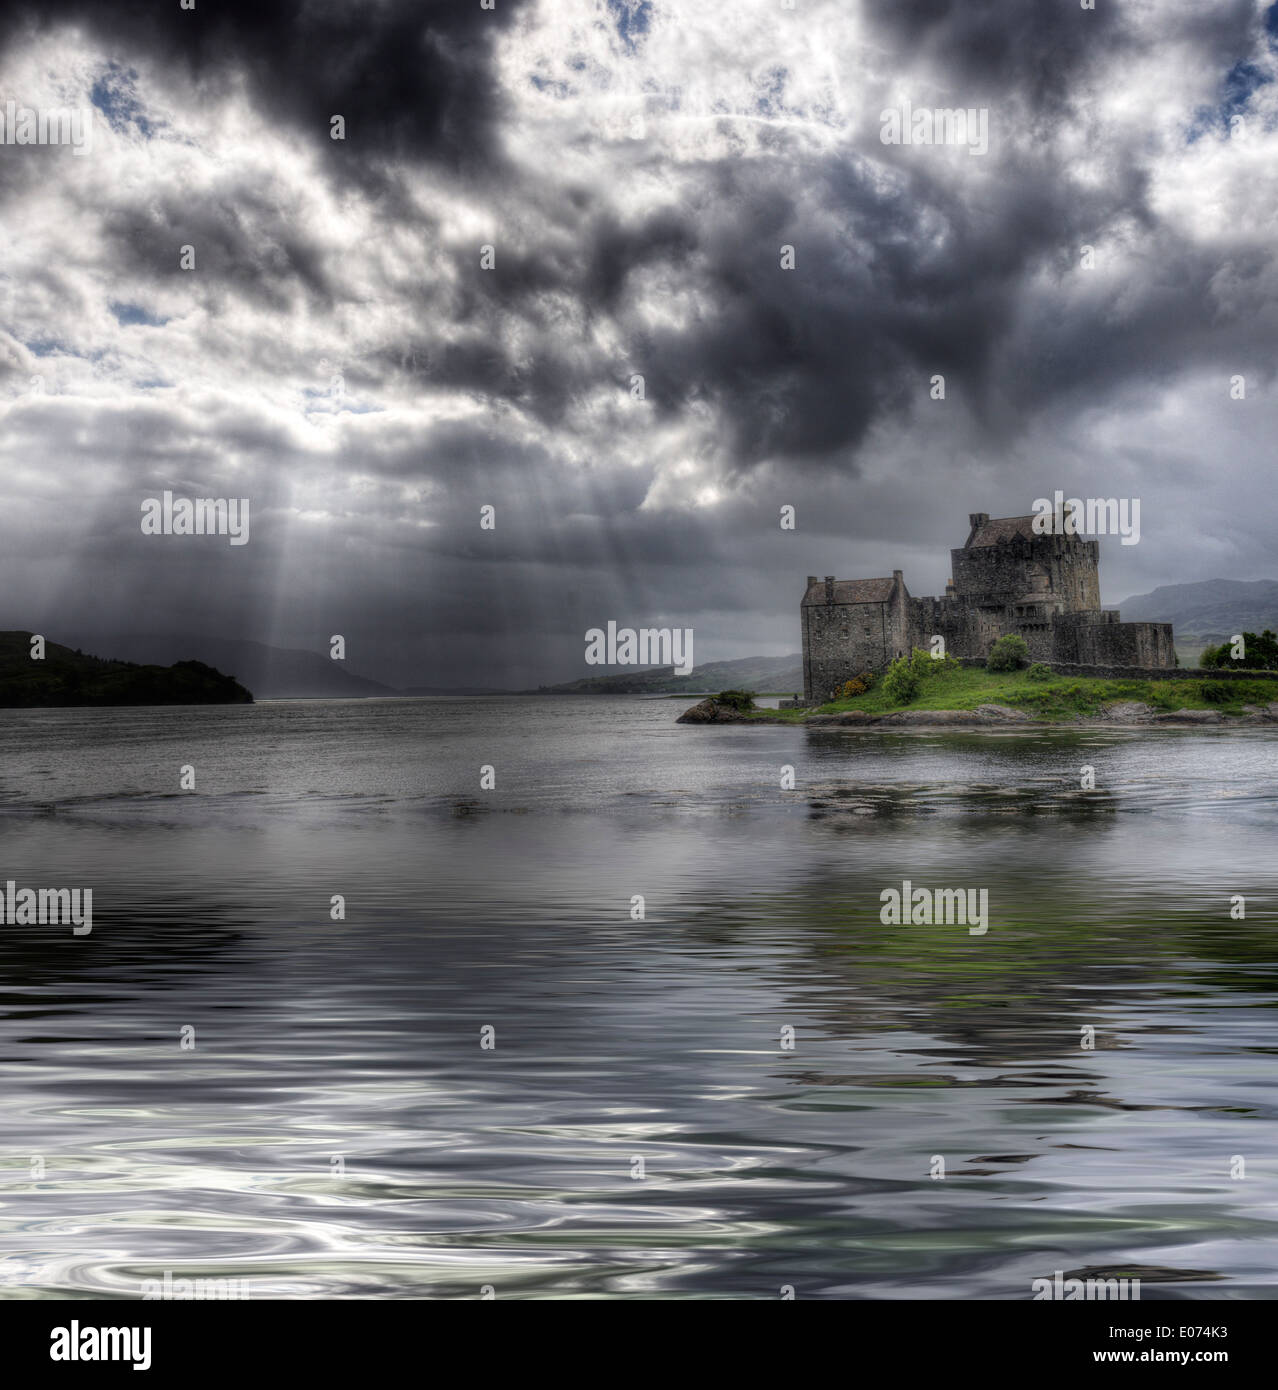 Dramatic lighting on Eilean Donan Castle in Scotland - Stock Image